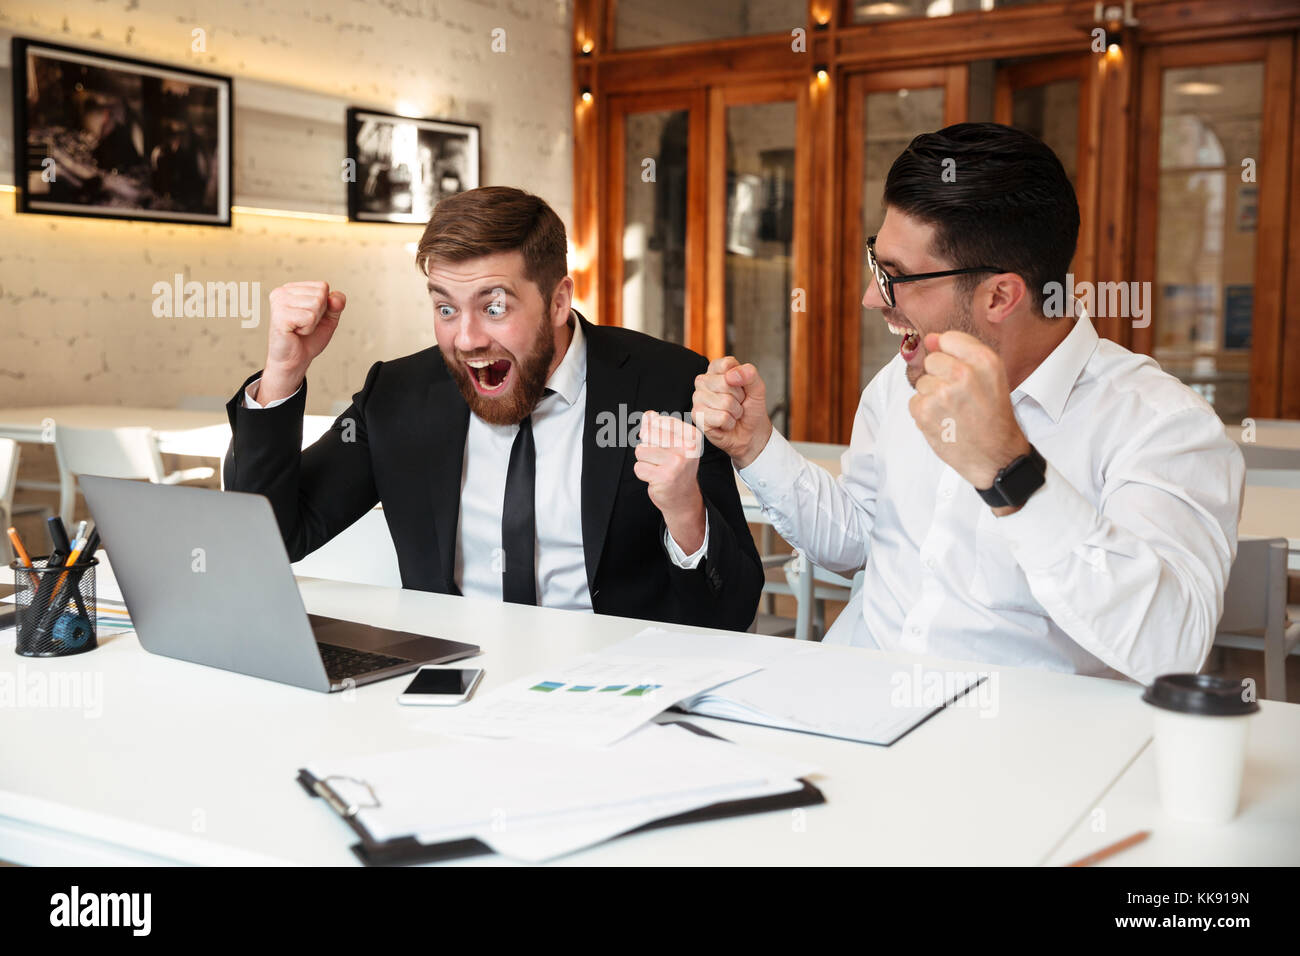 Two successful employees looking at a computer monitor on the table while expressing their achievement in the office Stock Photo